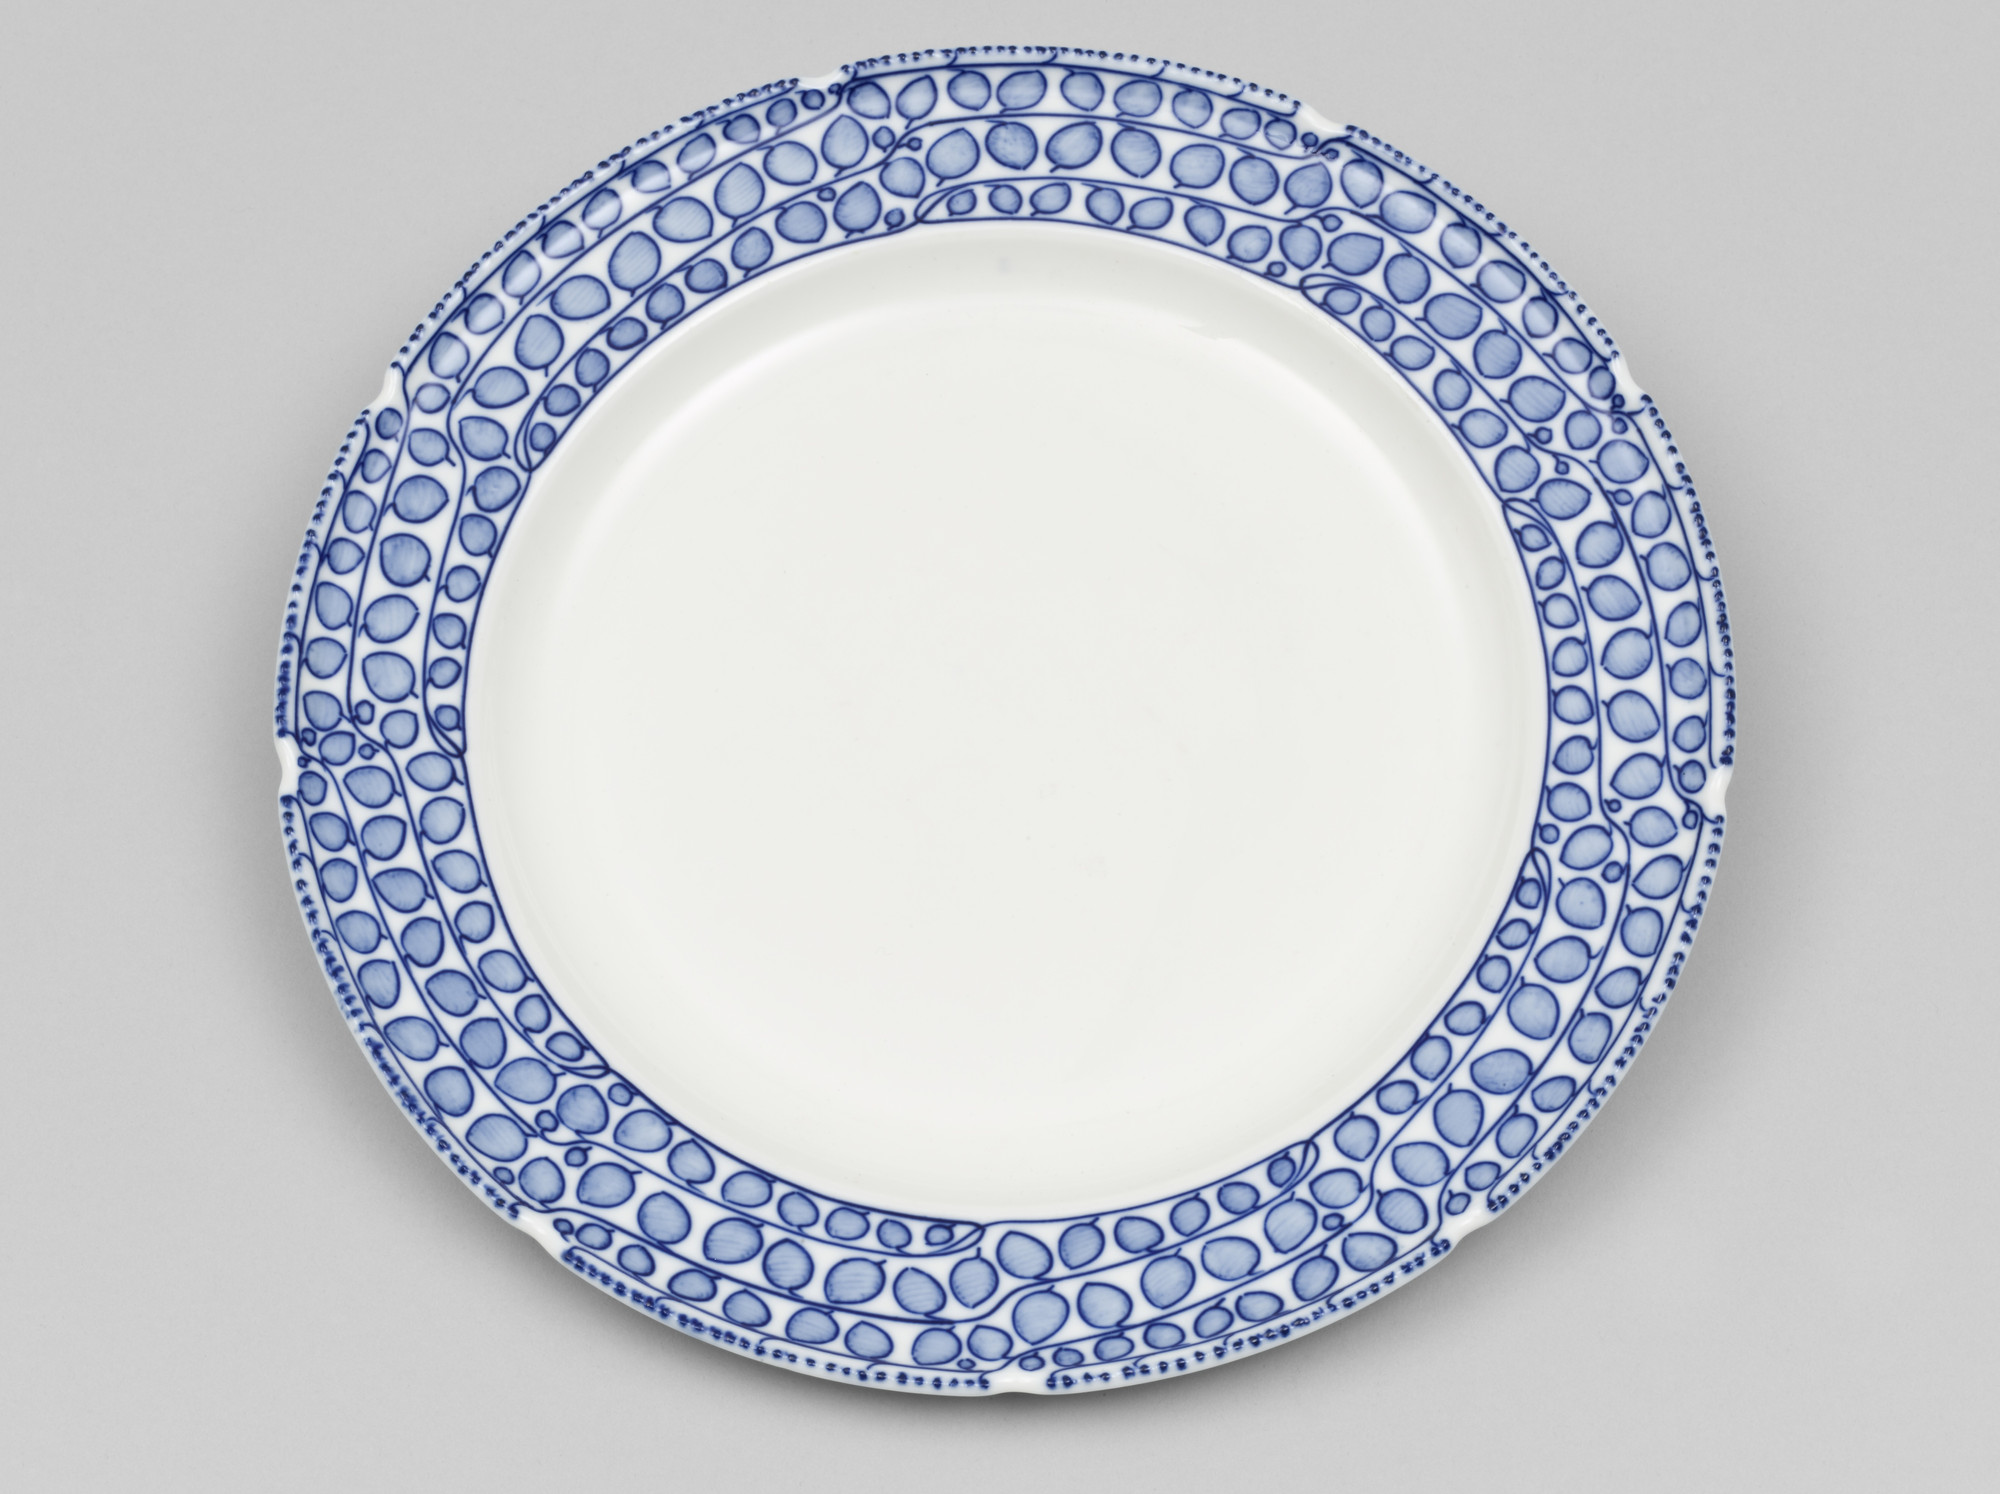 Richard Riemerschmid. Plate. ca. 1903